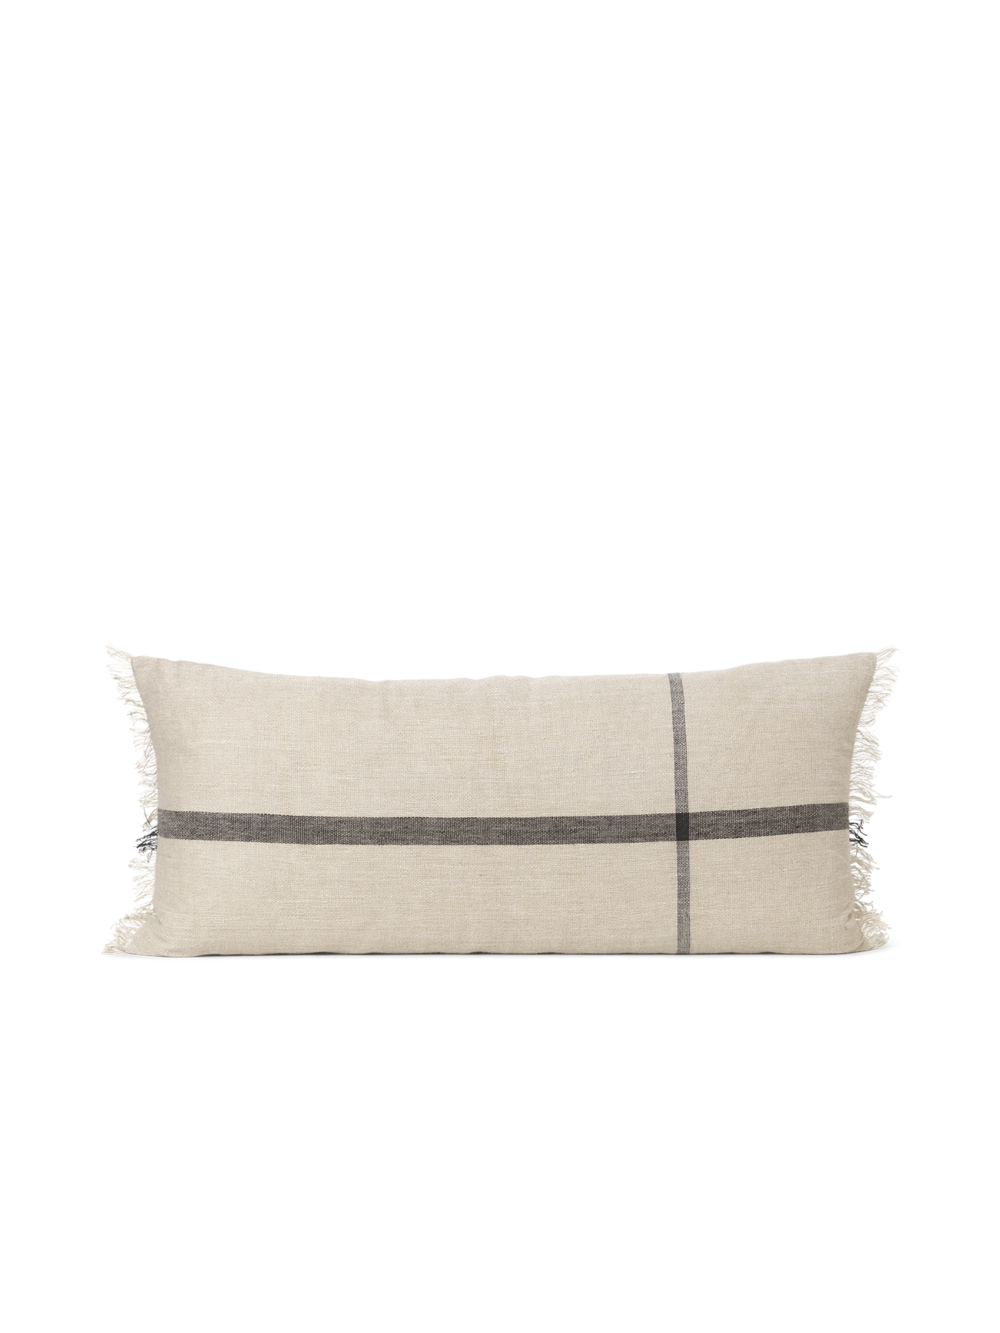 Calm Cushion - Camel/Black 40x90